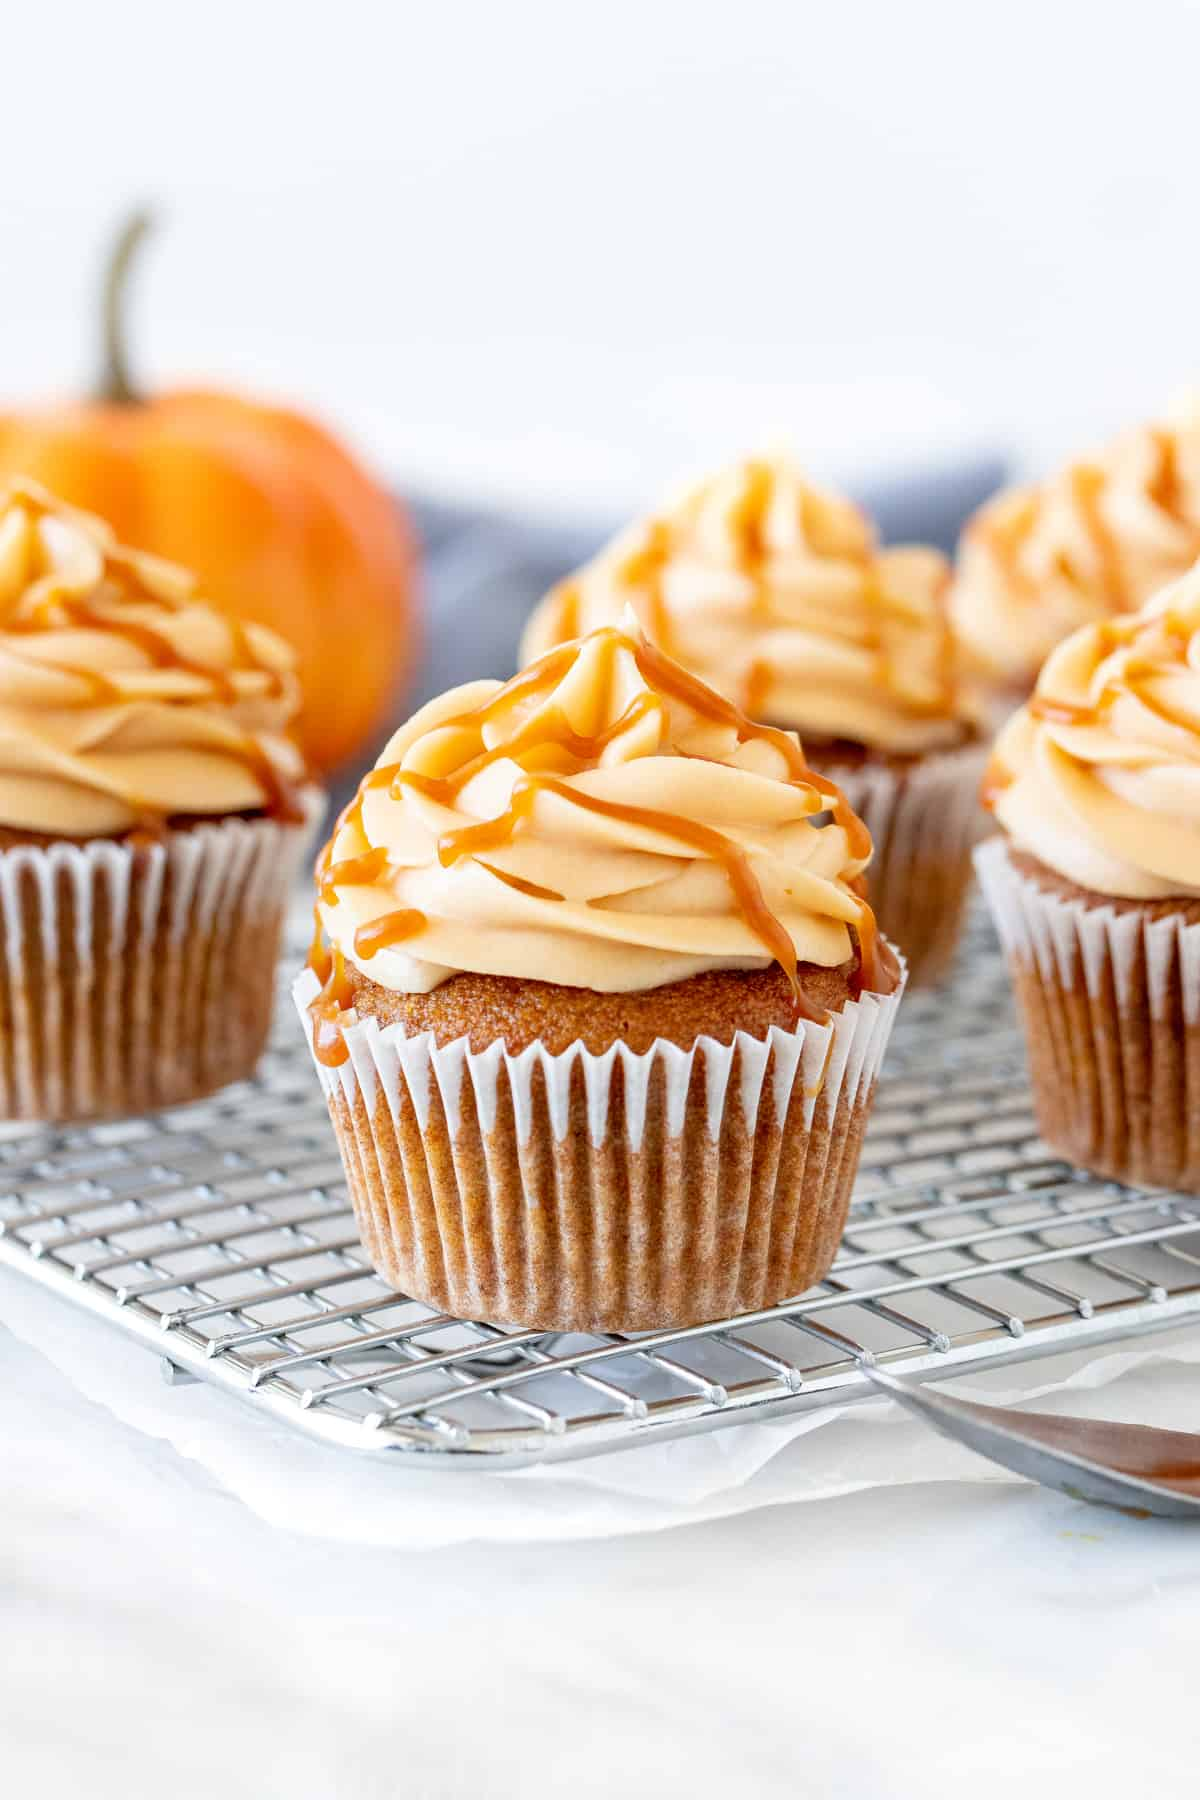 Pumpkin cupcakes with caramel cream cheese frosting on a wire rack.